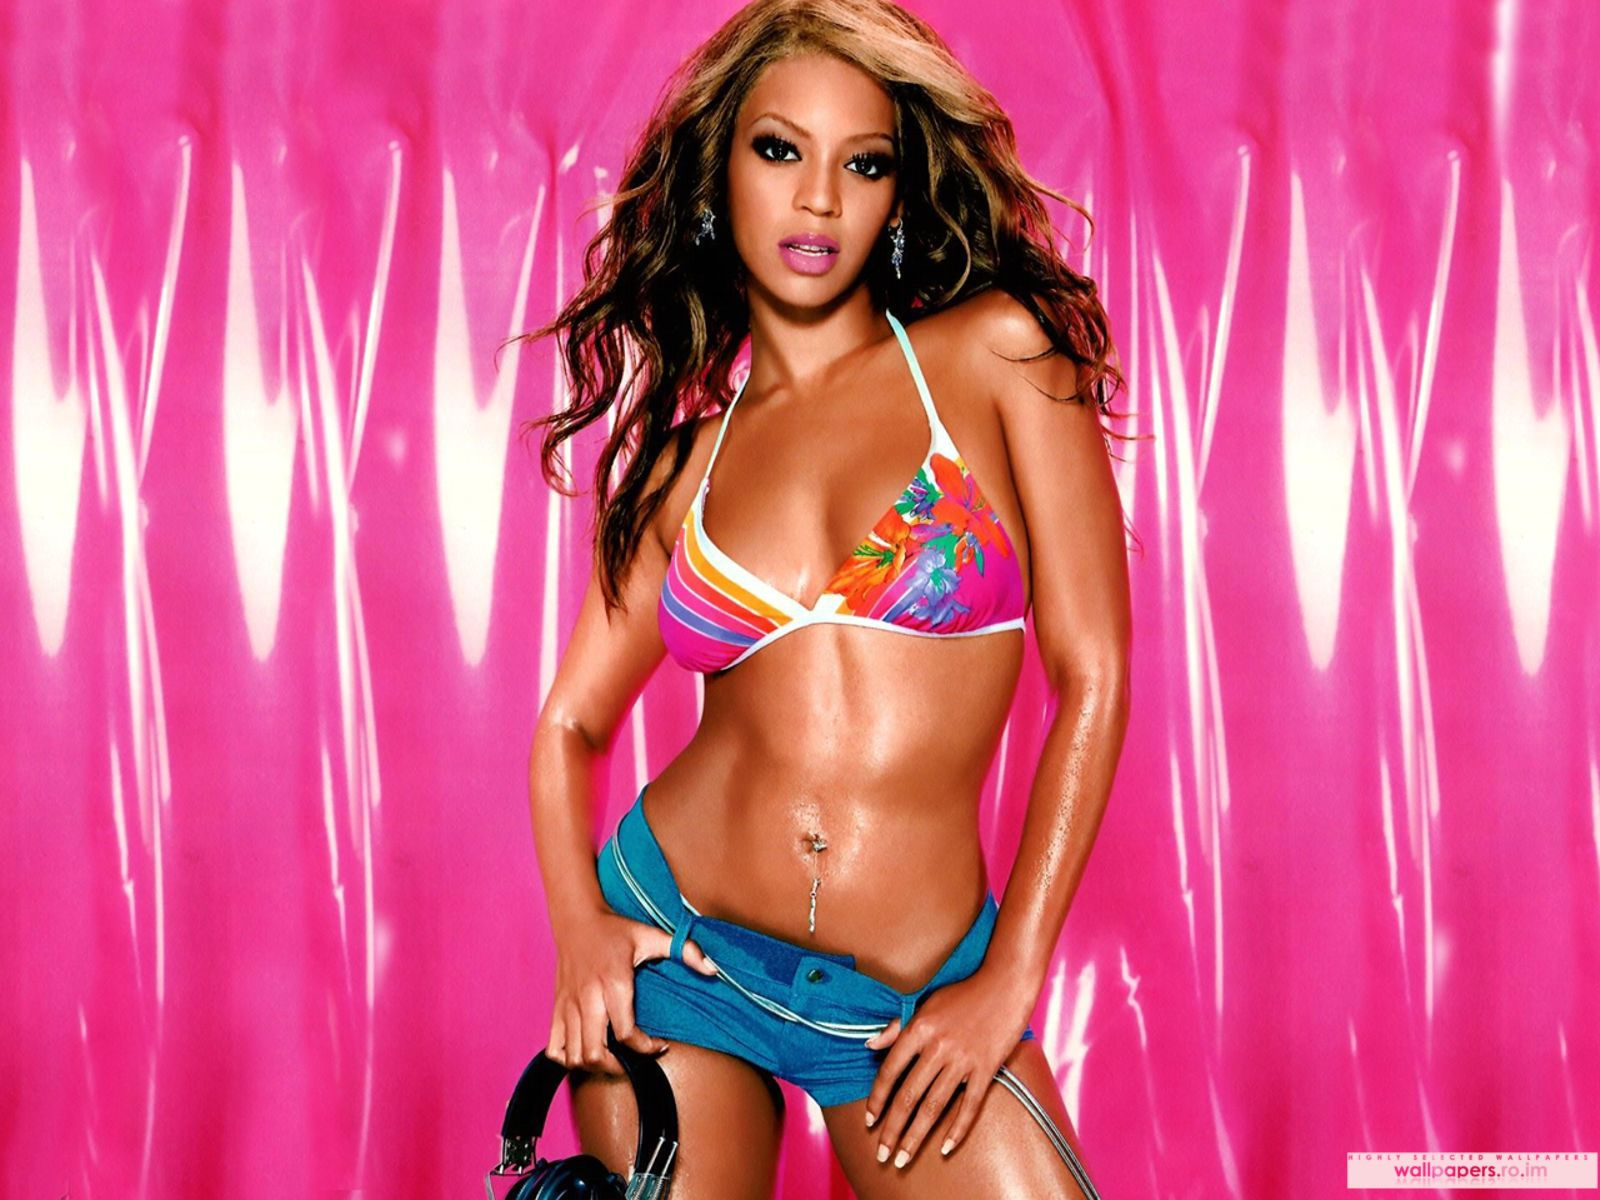 beyonce with headphones | Beyonce Giselle Knowles with headphones in her hand Wallpaper ...